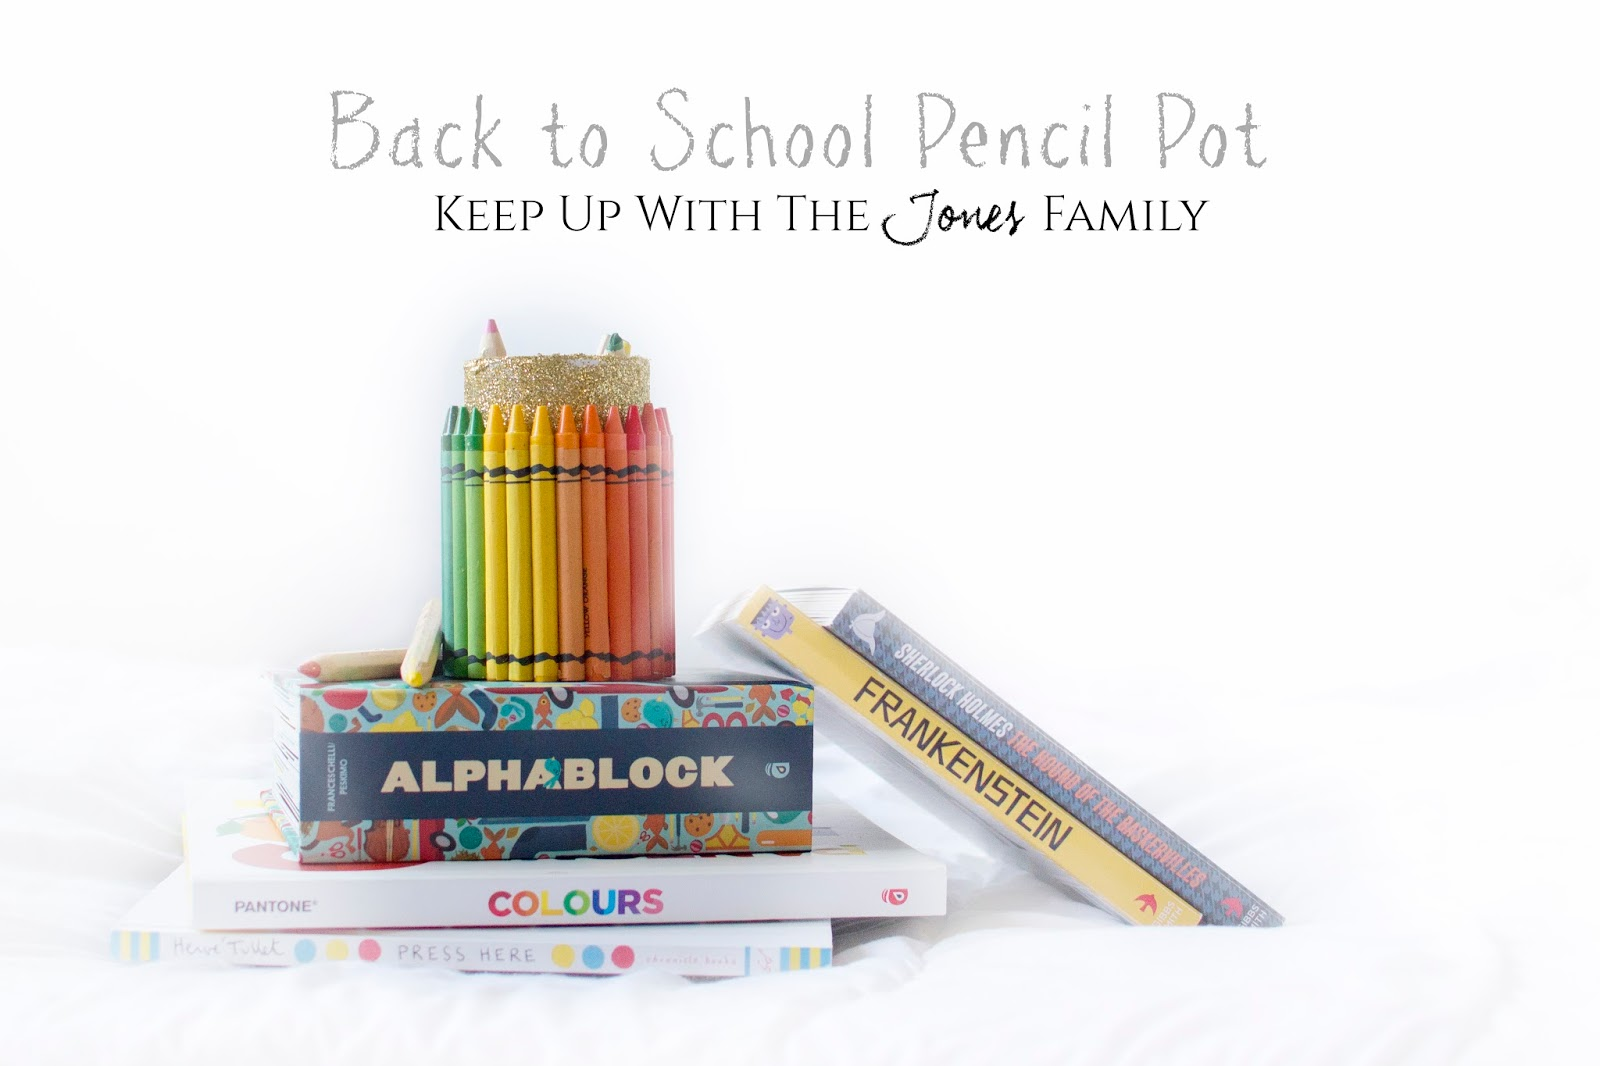 BACK TO SCHOOL PENCIL POT CRAFT: A GIFT FOR TEACHERS